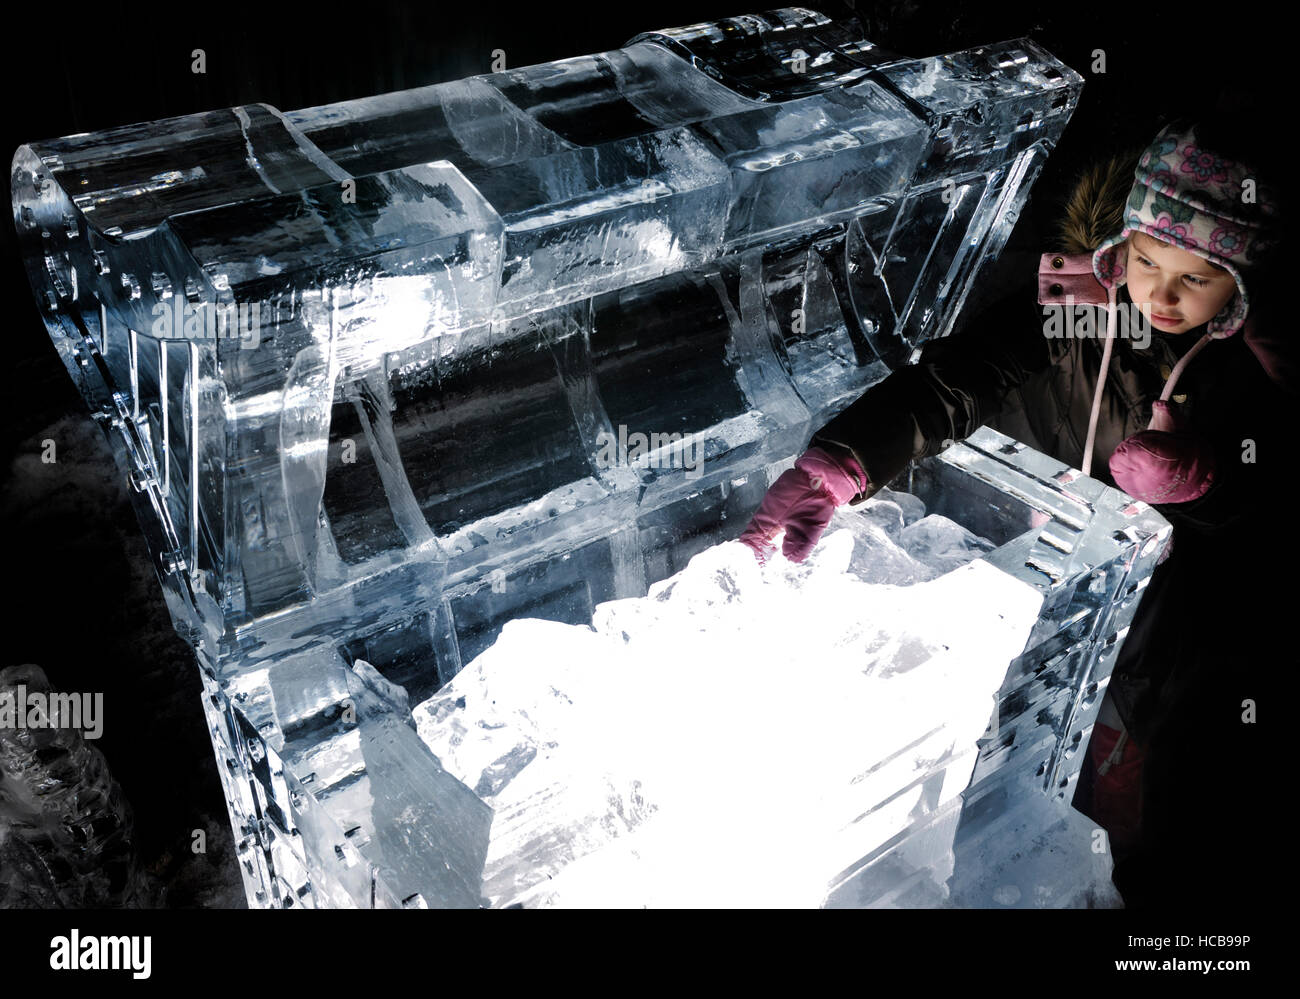 Child reaching into an illuminated treasure chest made of ice at night - Stock Image